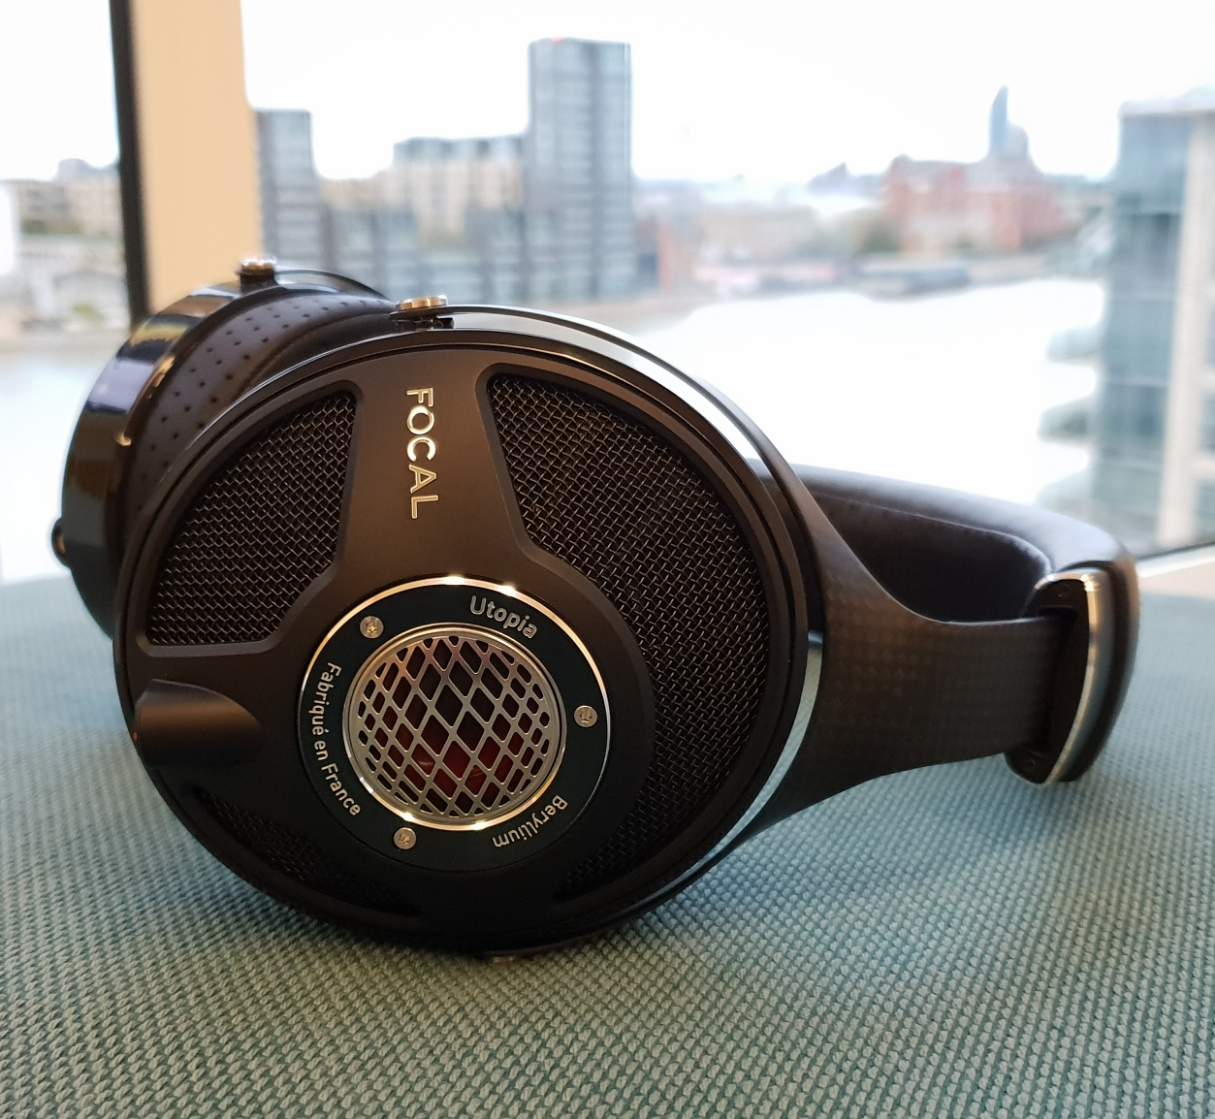 Focal Utopia | Reviews | Headphone Reviews and Discussion - Head-Fi org